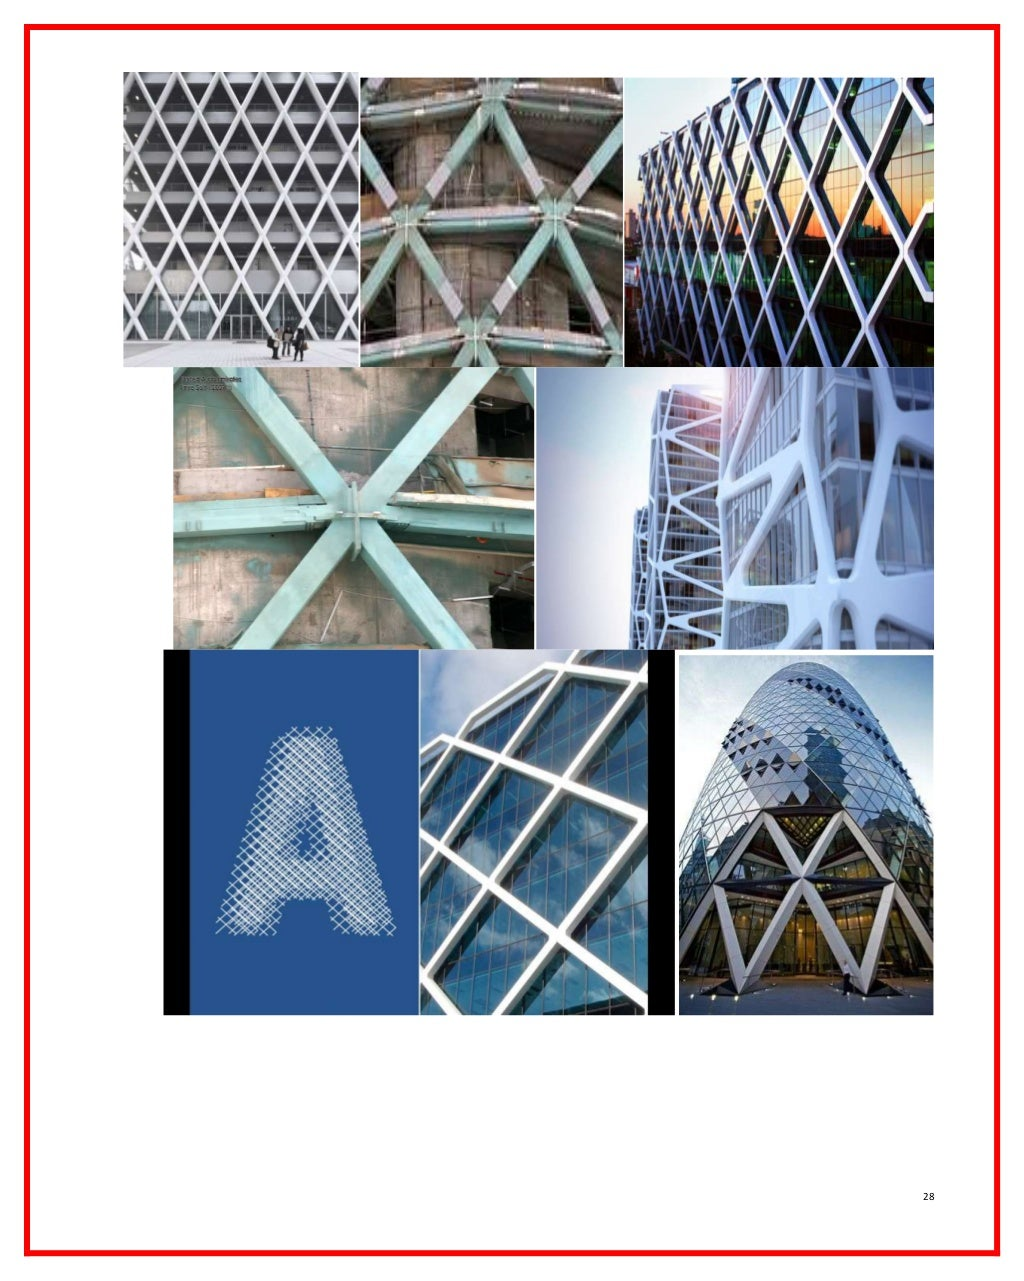 diagrid-structure-system-28-1024.jpg